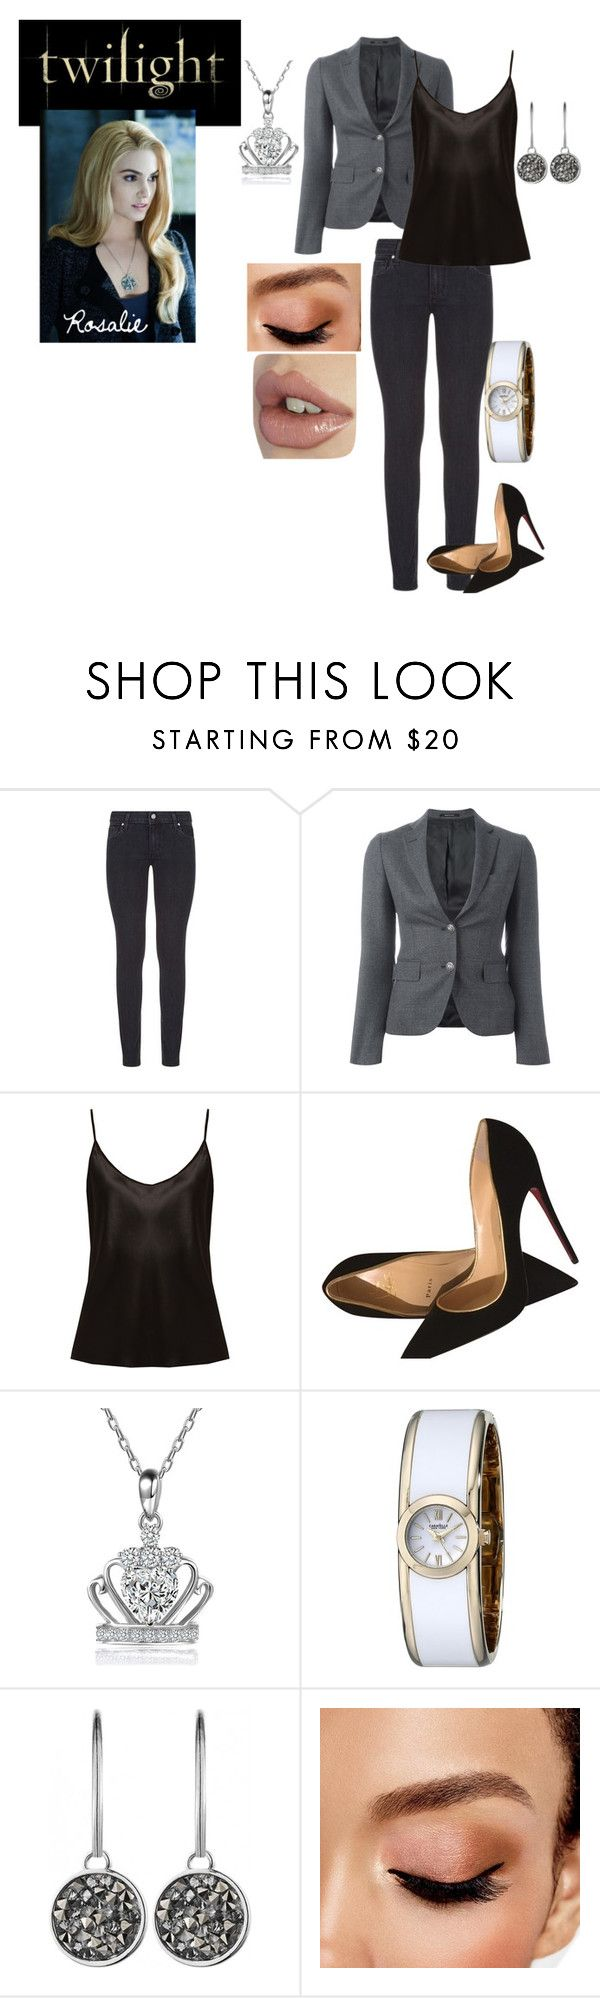 """Twilight's Rosalie hale"" by chicchivy on Polyvore featuring Paige Denim, Tagliatore, La Perla, Christian Louboutin, Caravelle by Bulova, Dyrberg/Kern and Avon"